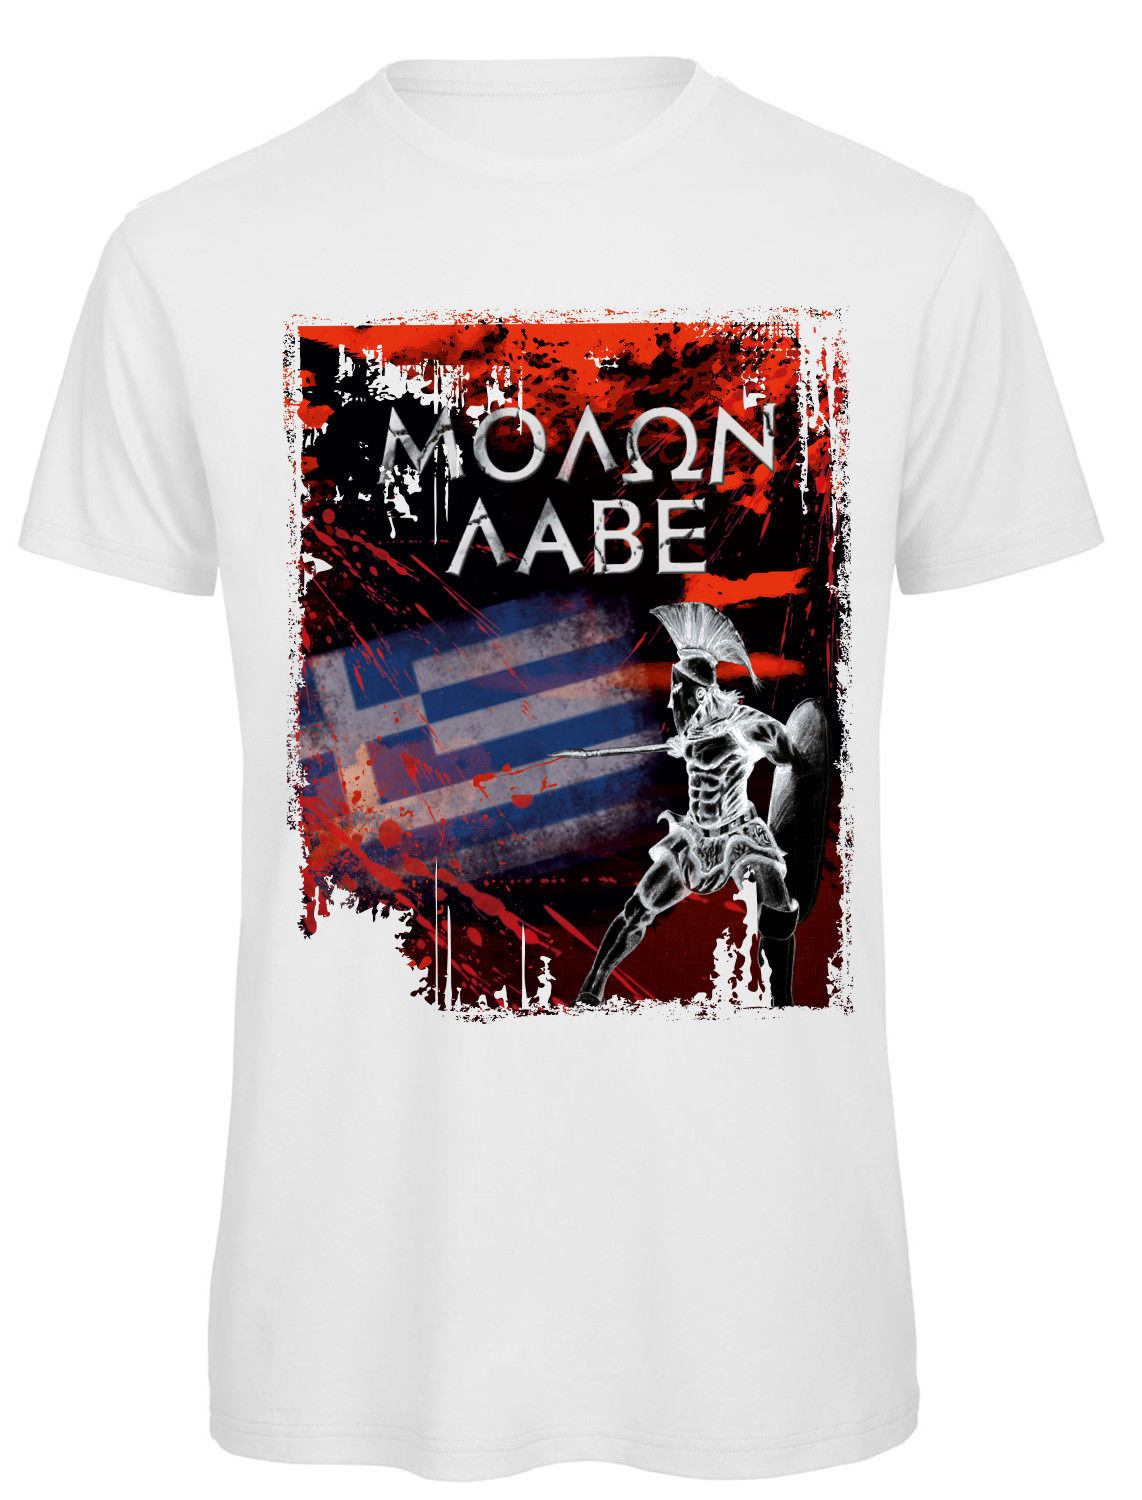 T Shirt Griechenland Greece Hellas MOLON LABE Sparta Thermopyles Funny Tees  Men Short Sale 100 % Cotton T Shirt TOP TEE-in T-Shirts from Men s Clothing  ... 262b3af2f2